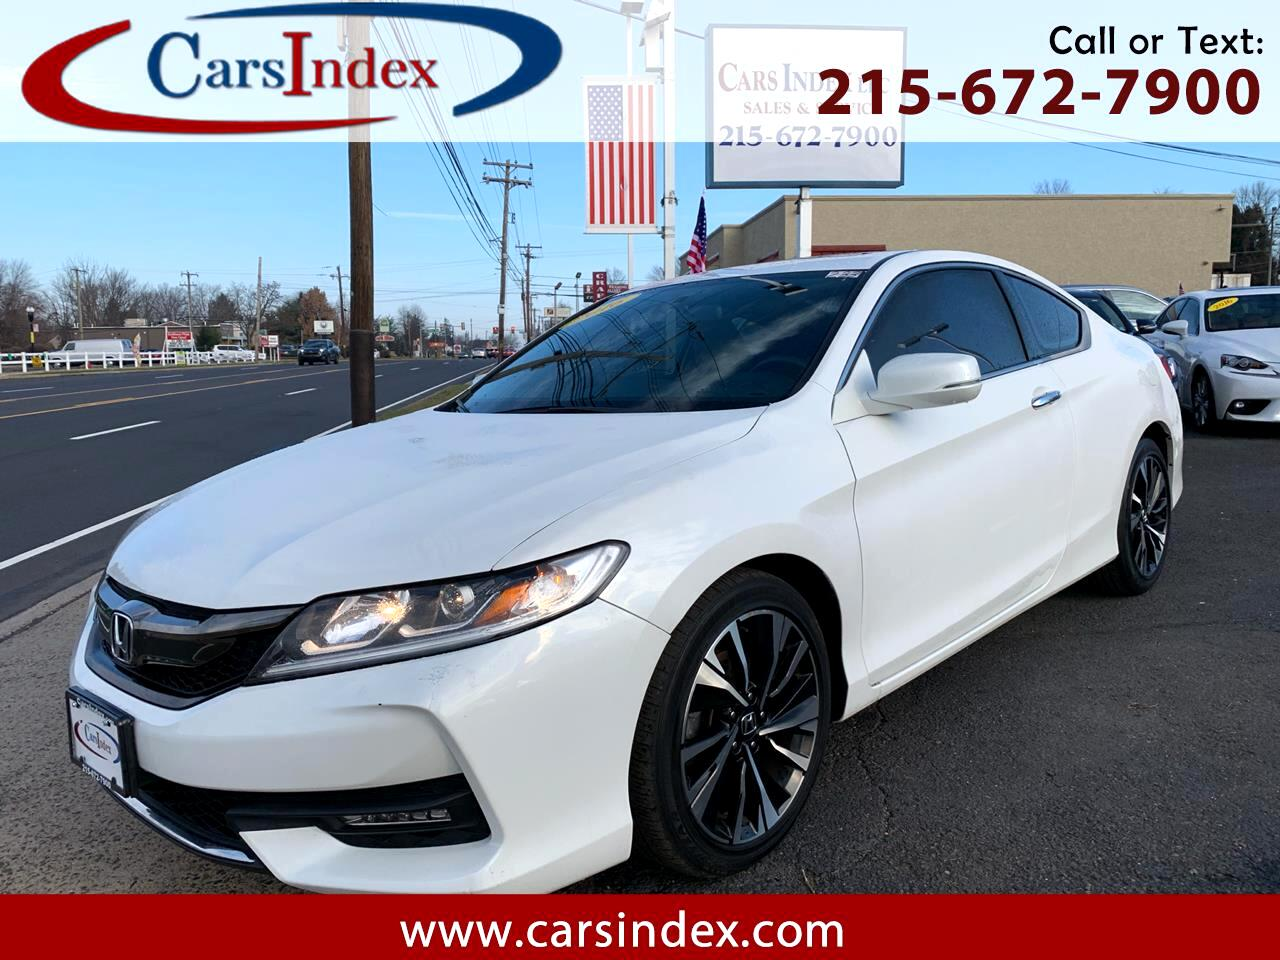 2016 Honda Accord Coupe 2dr I4 CVT EX